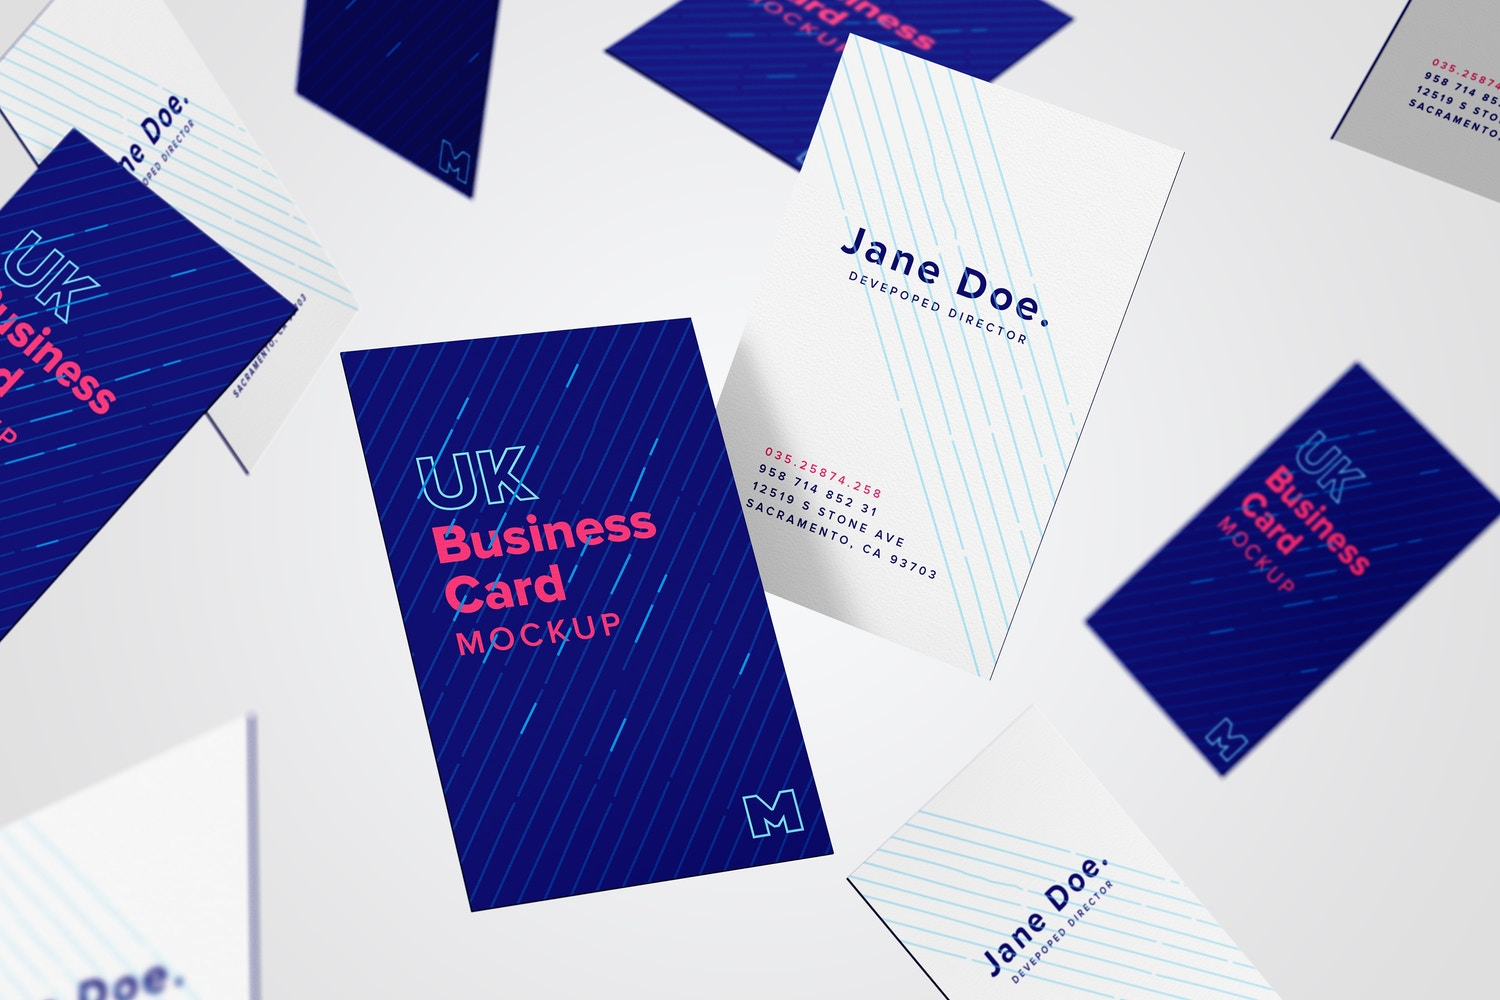 UK Business Card Mockup 05 by Original Mockups on Original Mockups